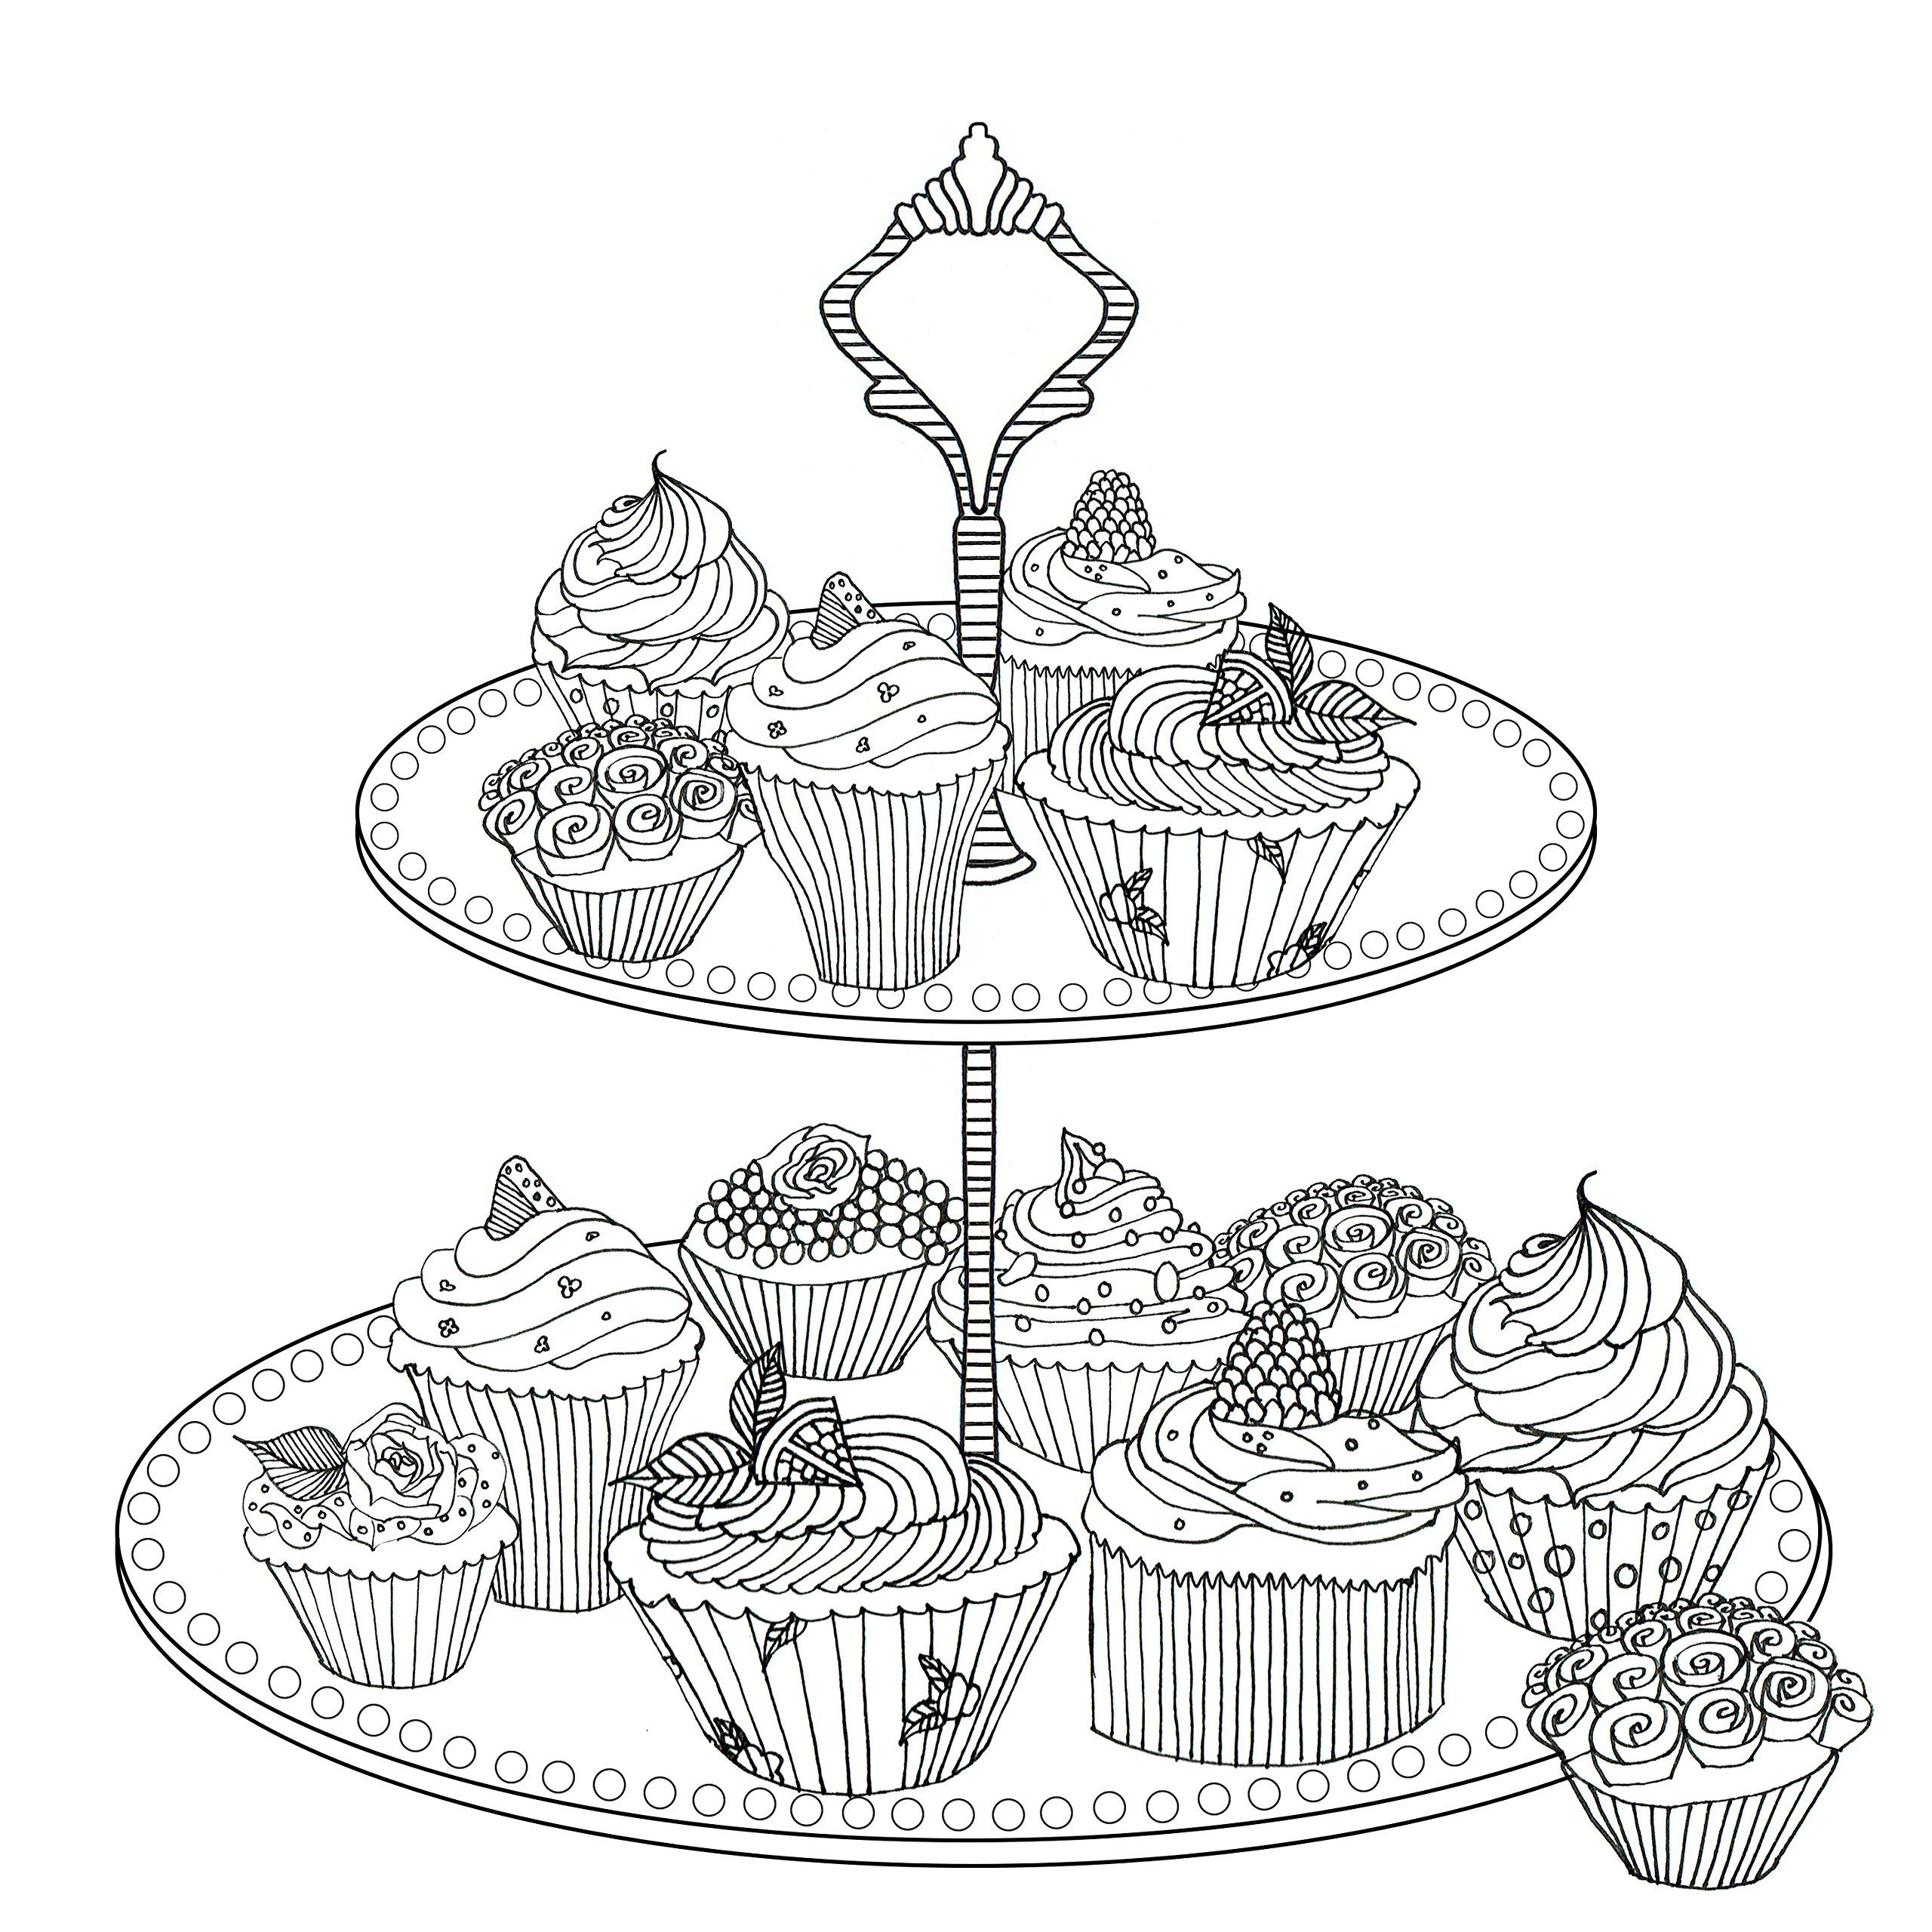 Robot Check Cupcake Coloring Pages Coloring Pages Colouring Pages